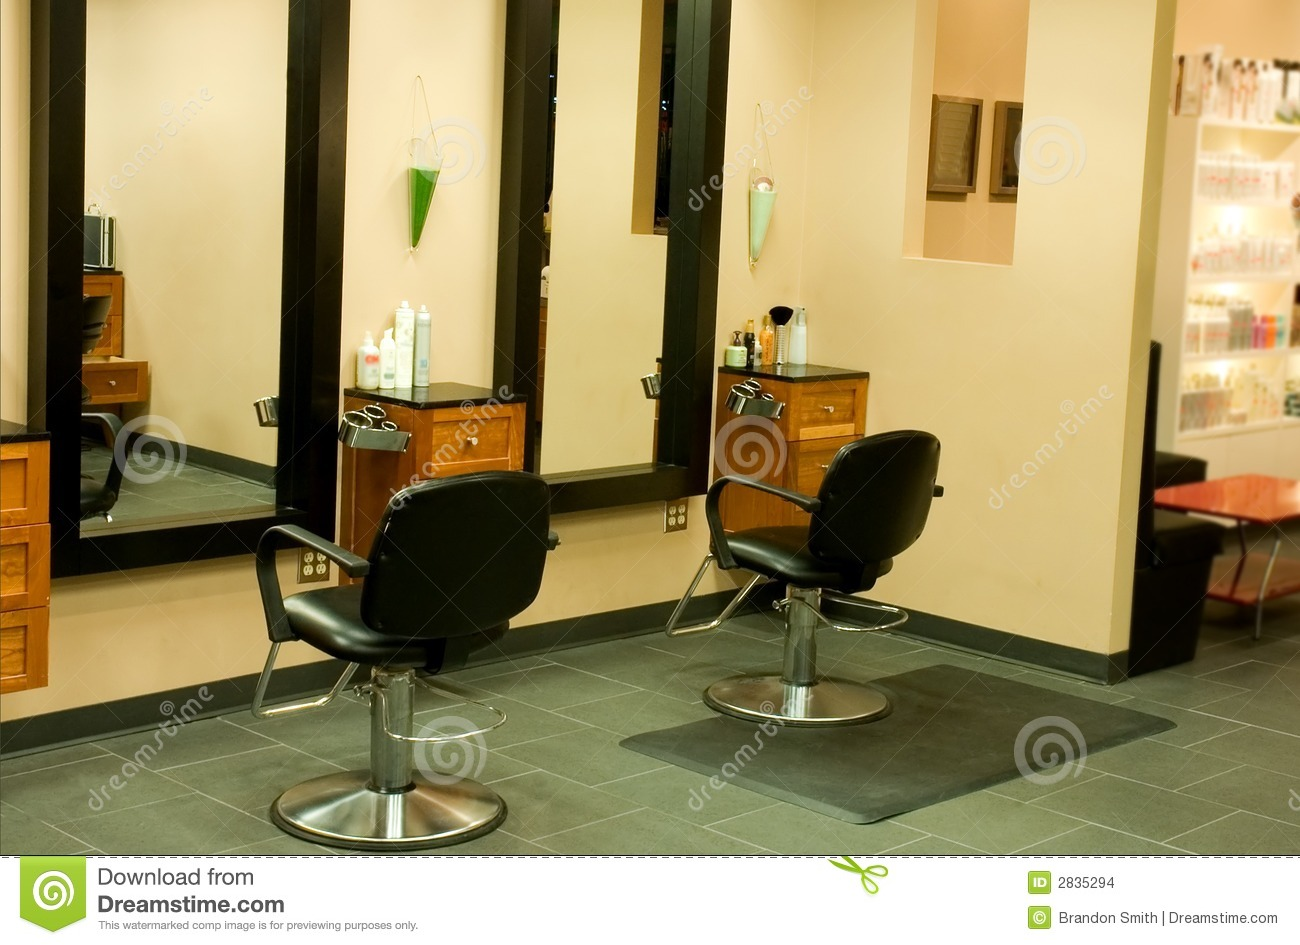 Hair Salon - 5 Stock Images - Image: 2835294